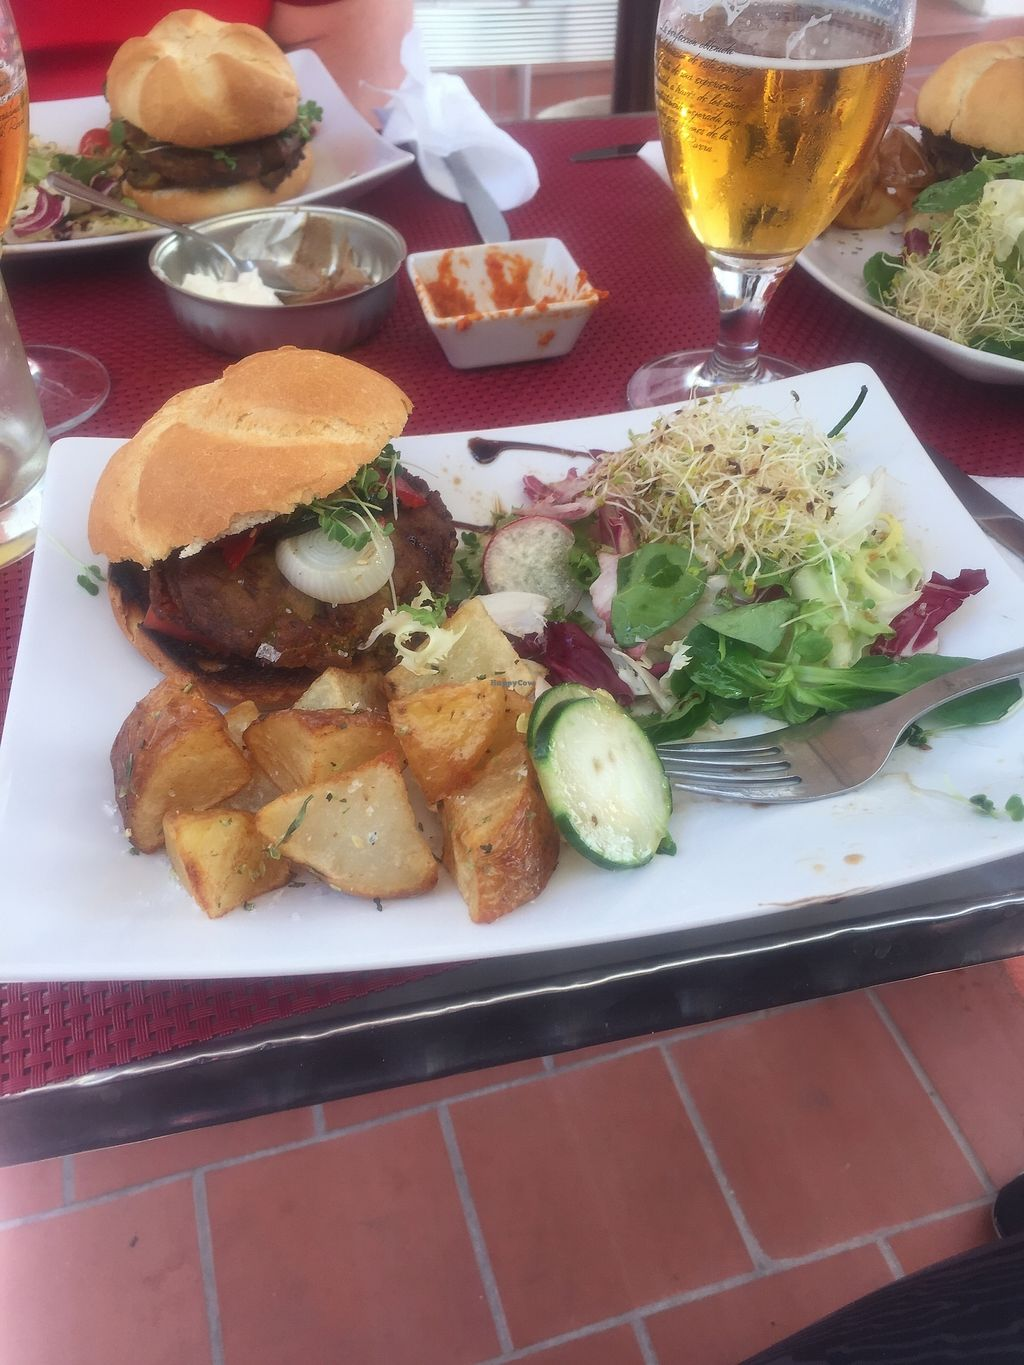 """Photo of La Raposa del Poble Sec  by <a href=""""/members/profile/LornaJane"""">LornaJane</a> <br/>Absolutely delicious burger. My meat eating friends even loved it  <br/> August 20, 2017  - <a href='/contact/abuse/image/91844/294639'>Report</a>"""